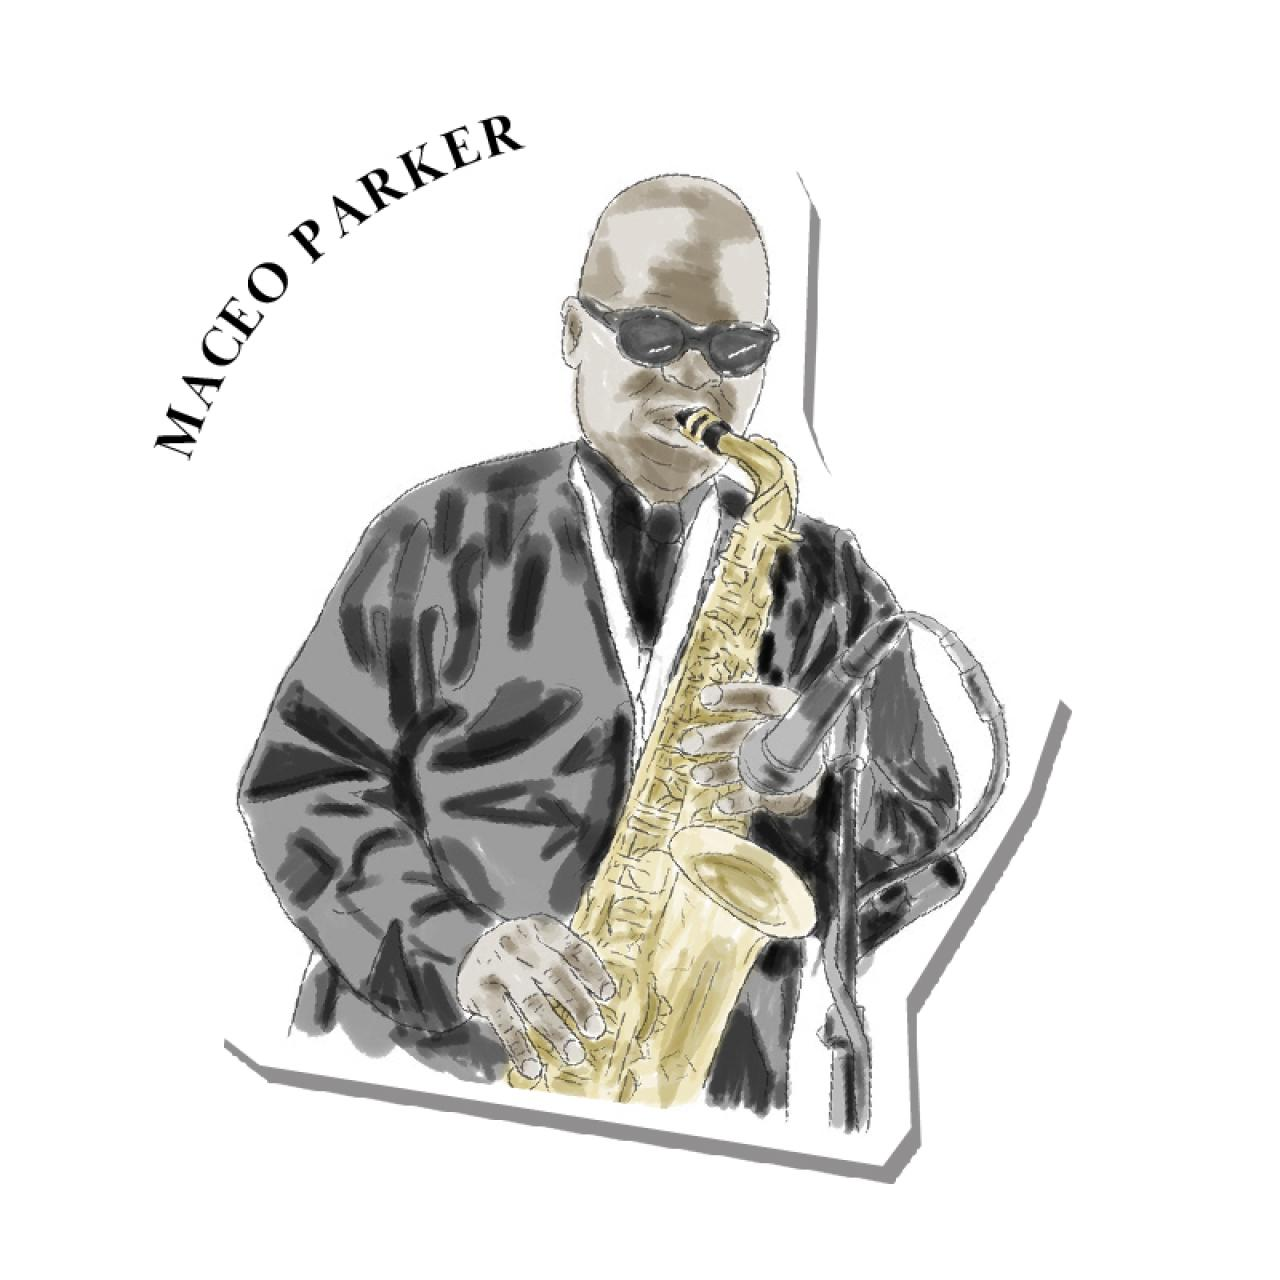 An illustration of Maceo Parker